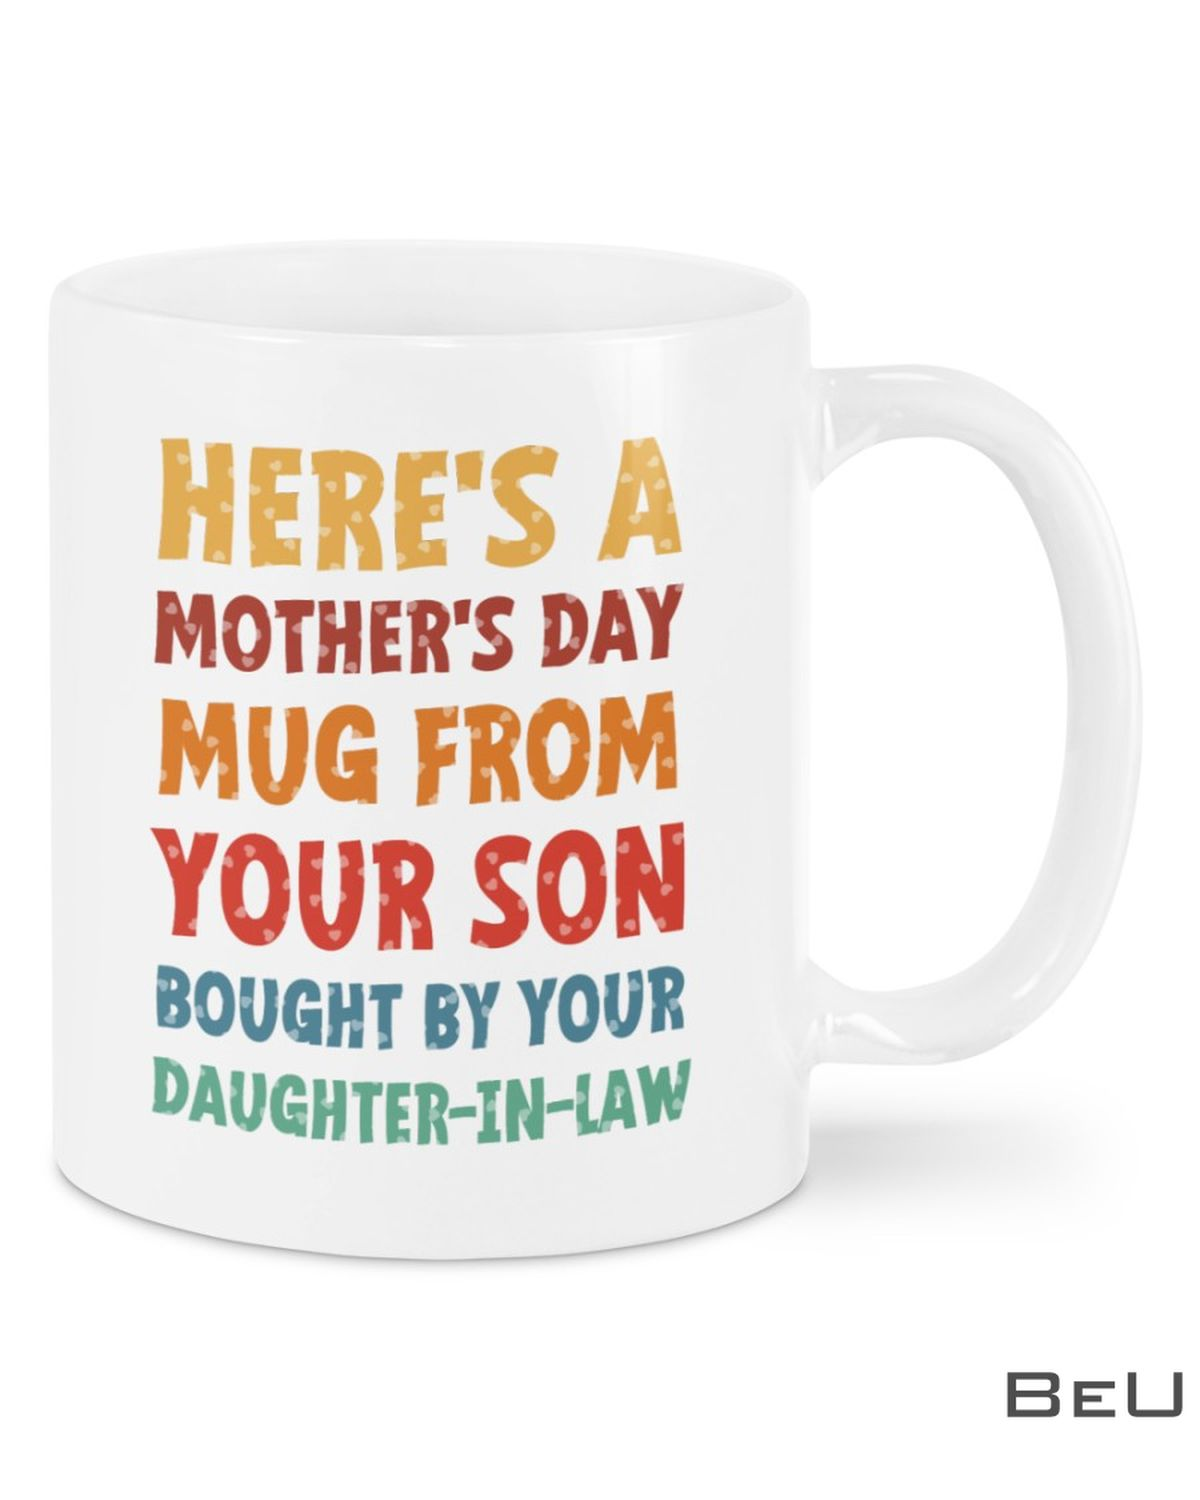 Here's A Mother's Day Mug From Your Son Bought By Your Daughter In Law Mug